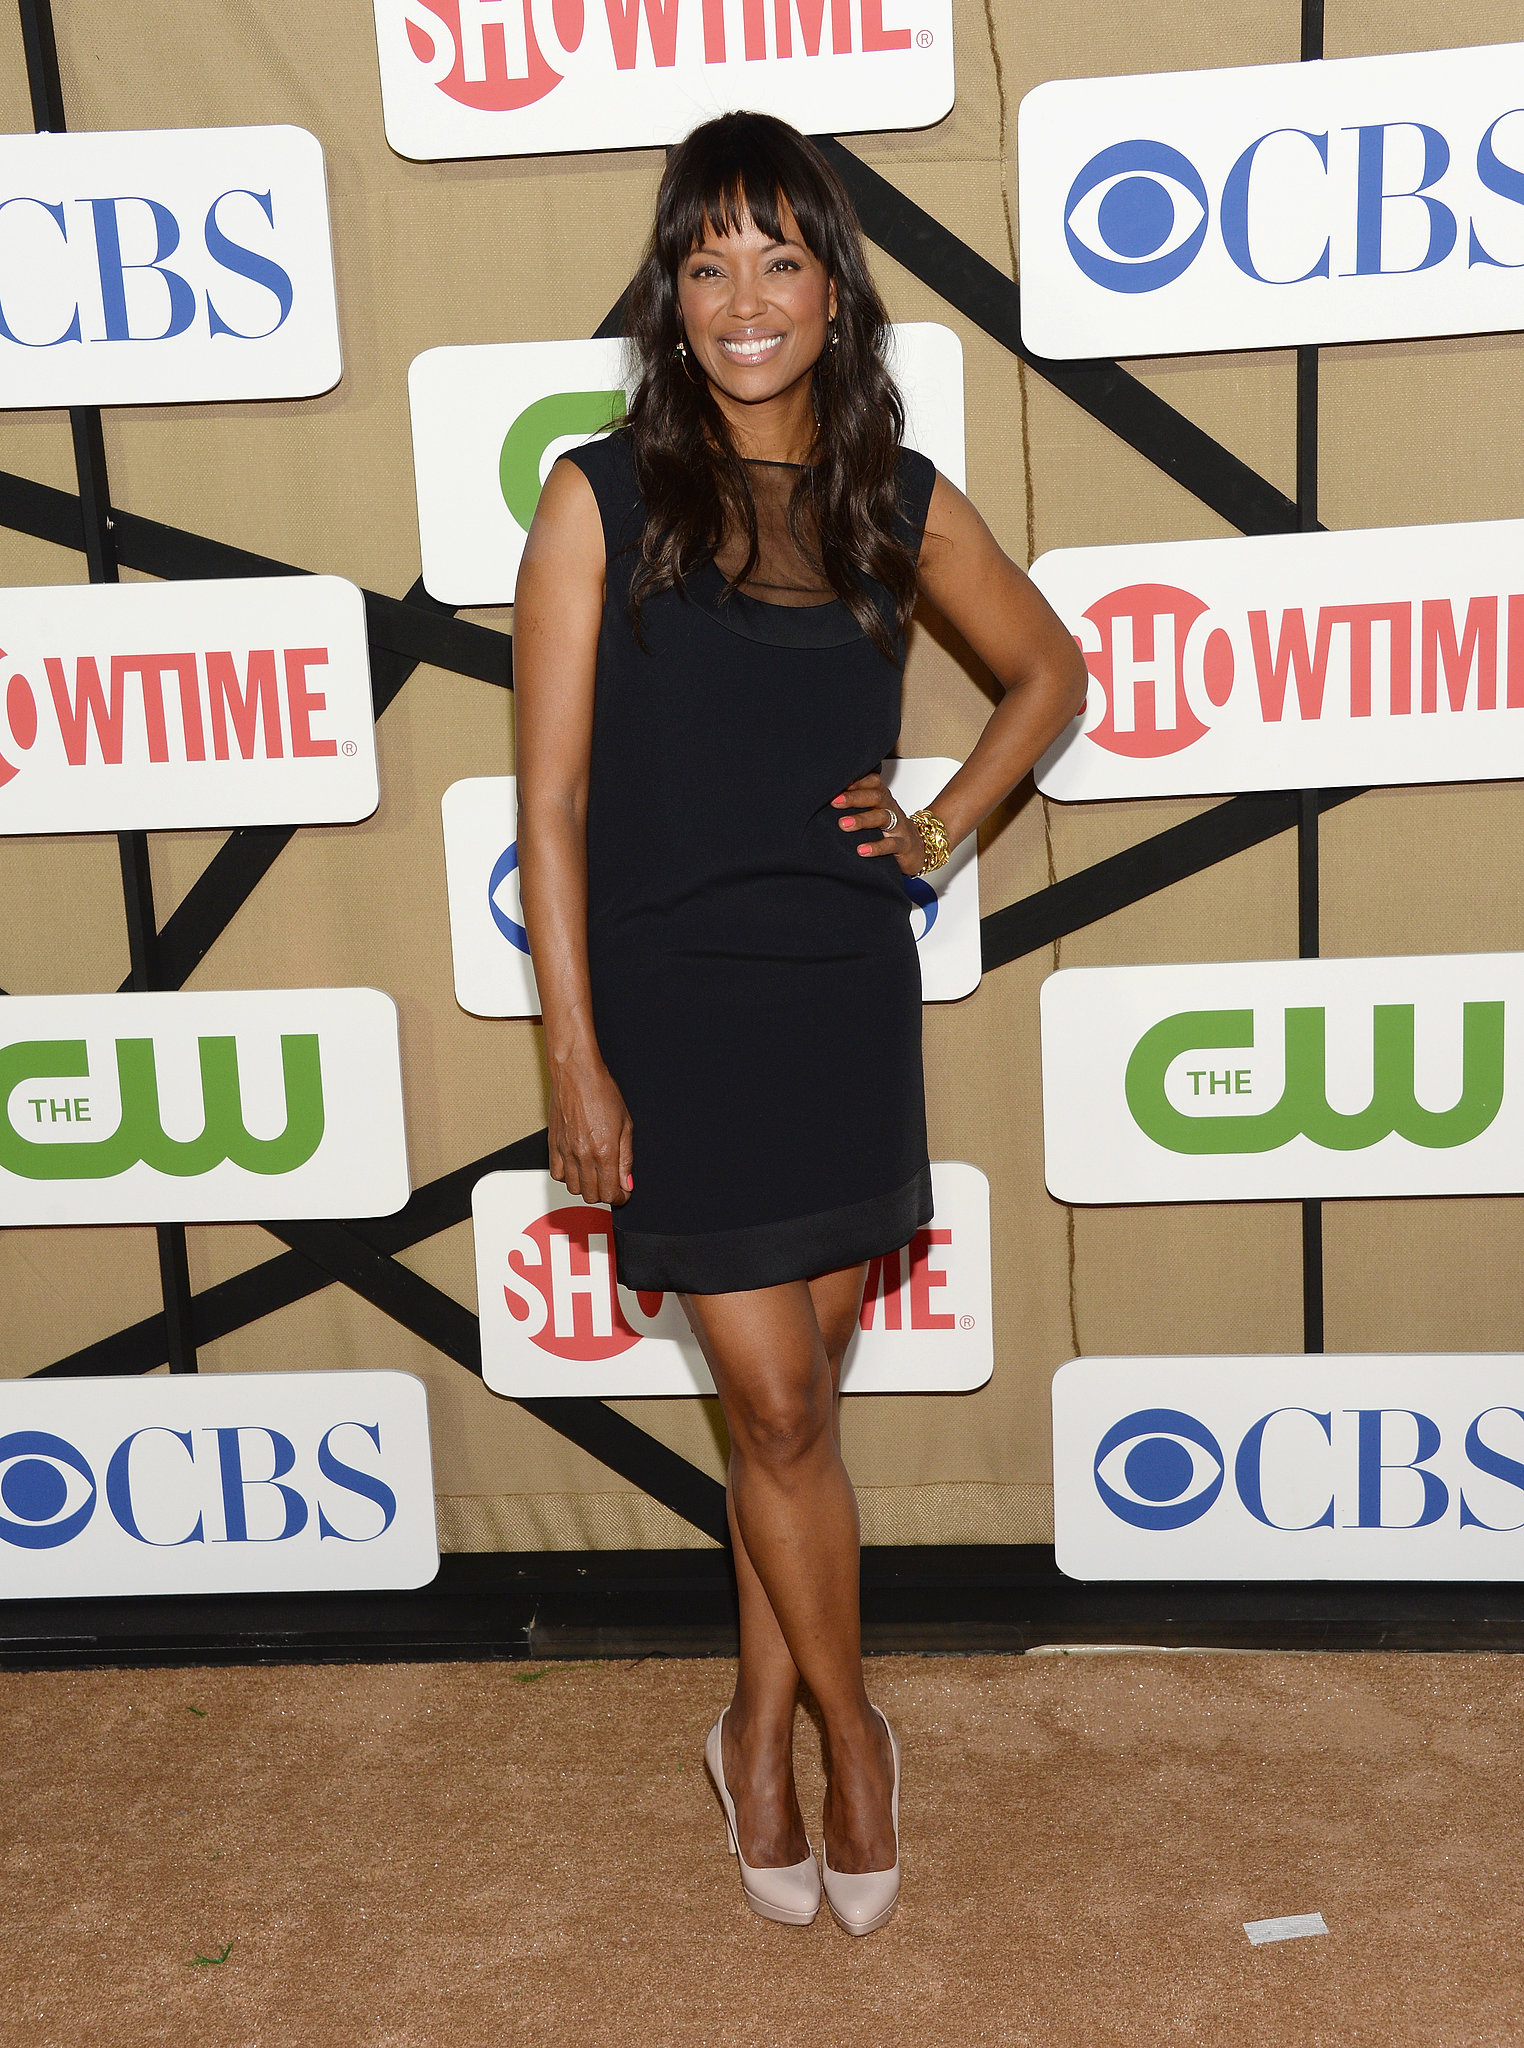 Aisha Tyler wore a short black dress to the CW, CBS, and Showtime party.